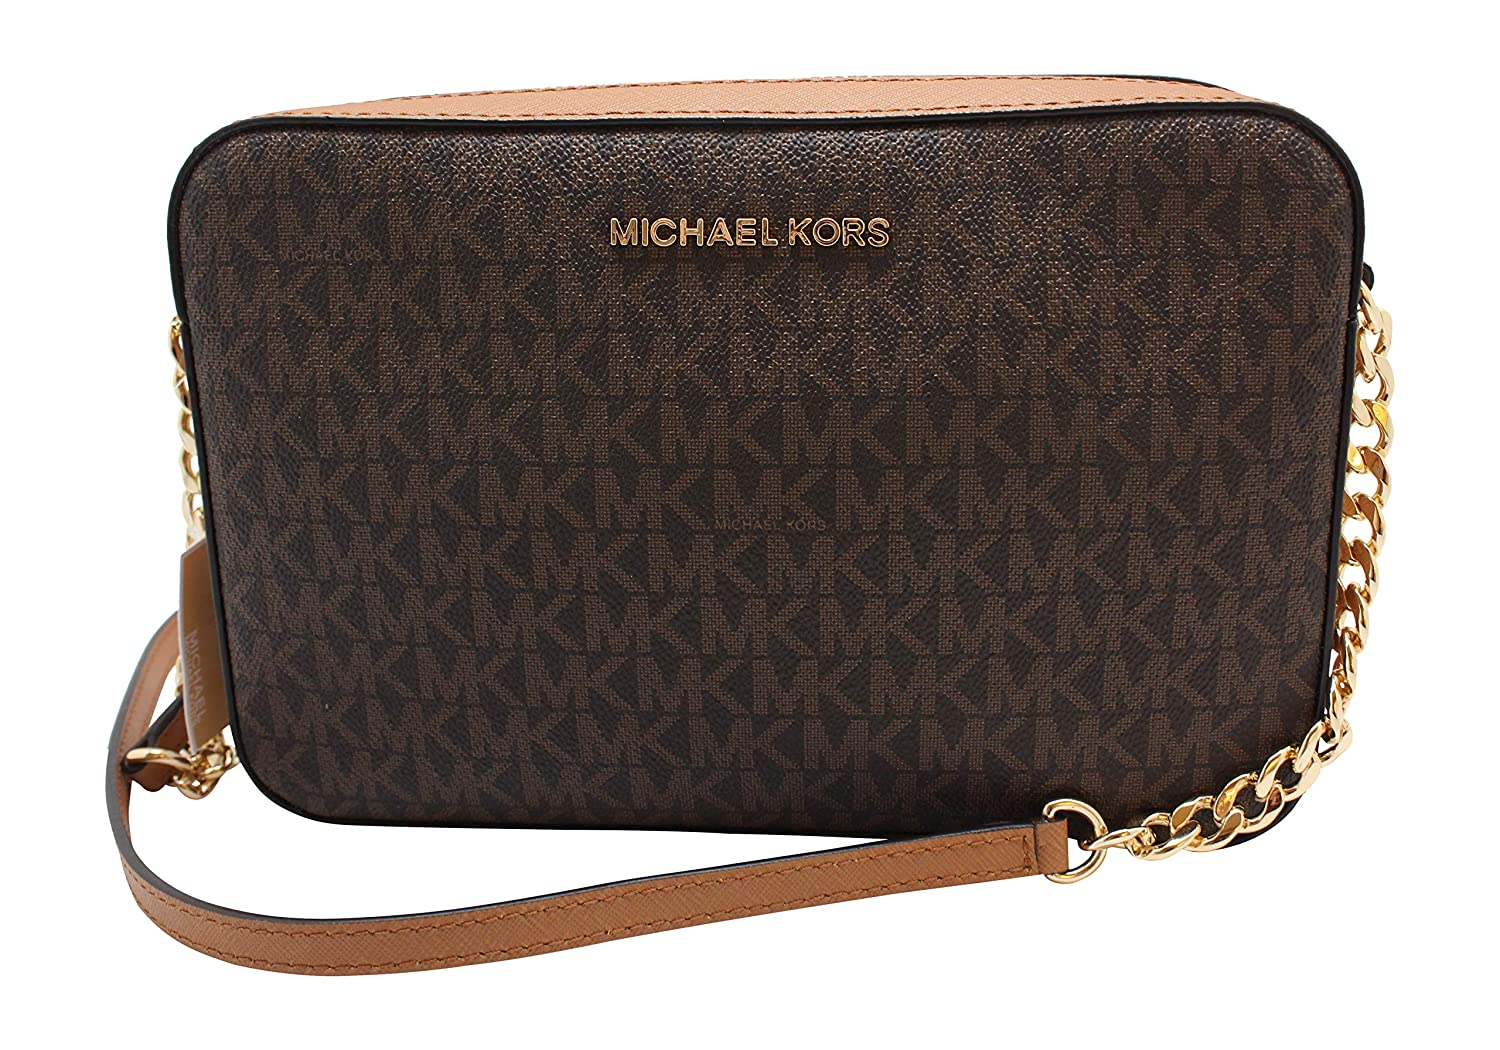 Michael Kors Jet Set Large East West Crossbody Bag Black MK Signature   Handbags  Amazon.com e00264304a38d